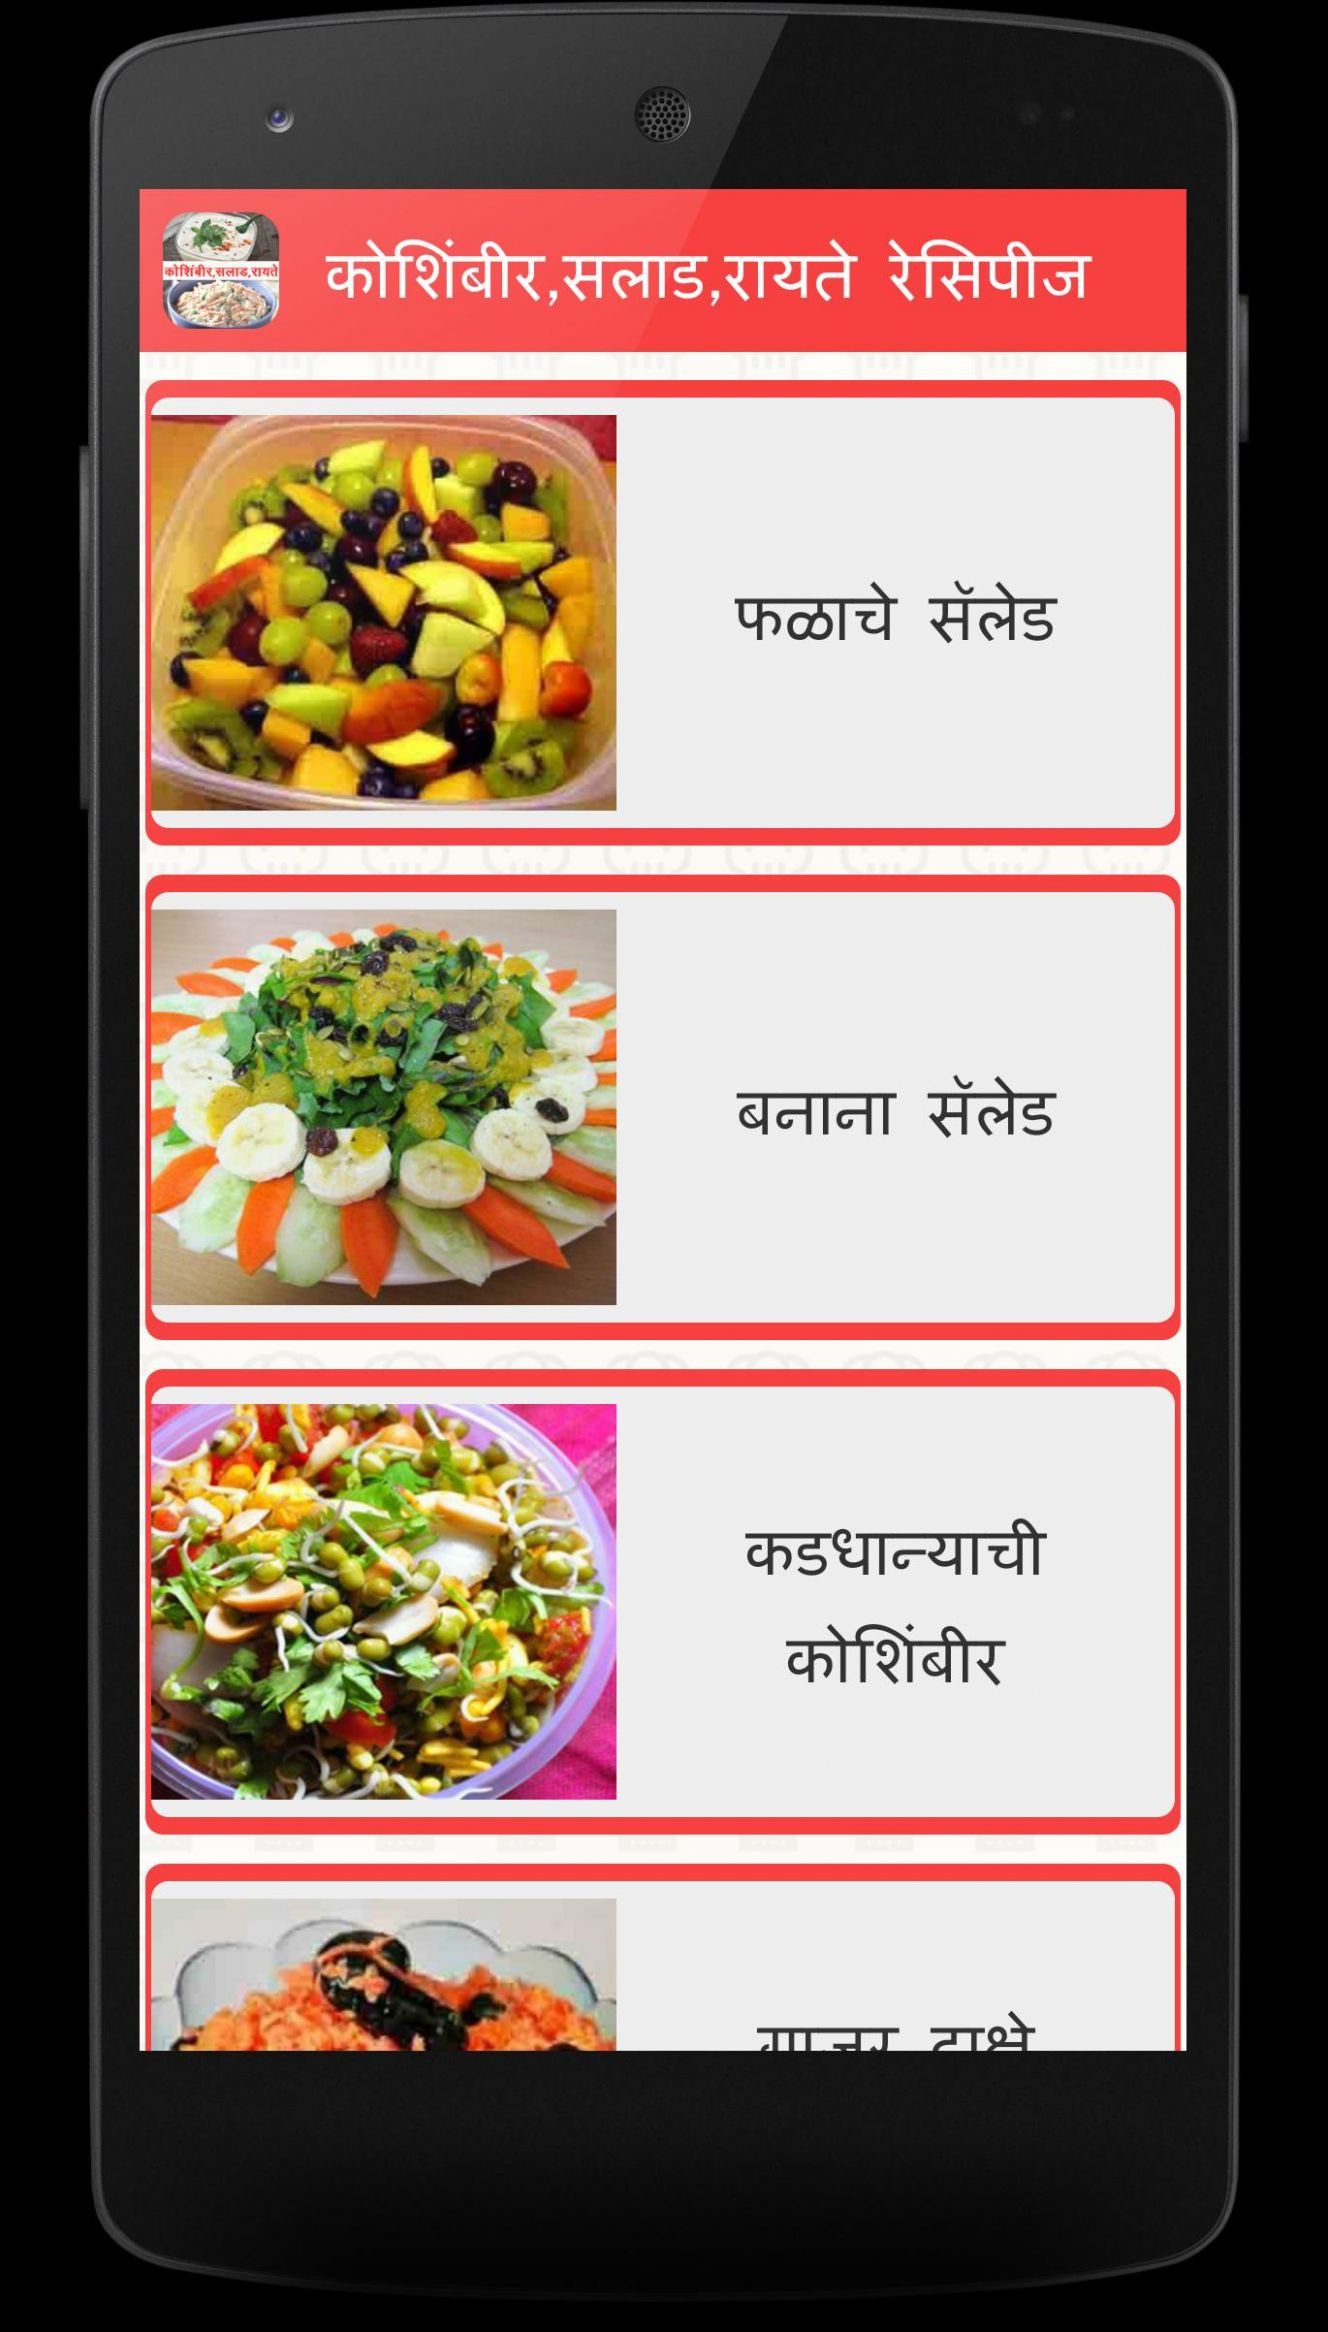 Salad Recipes in Marathi for Android - APK Download - Salad Recipes In Marathi